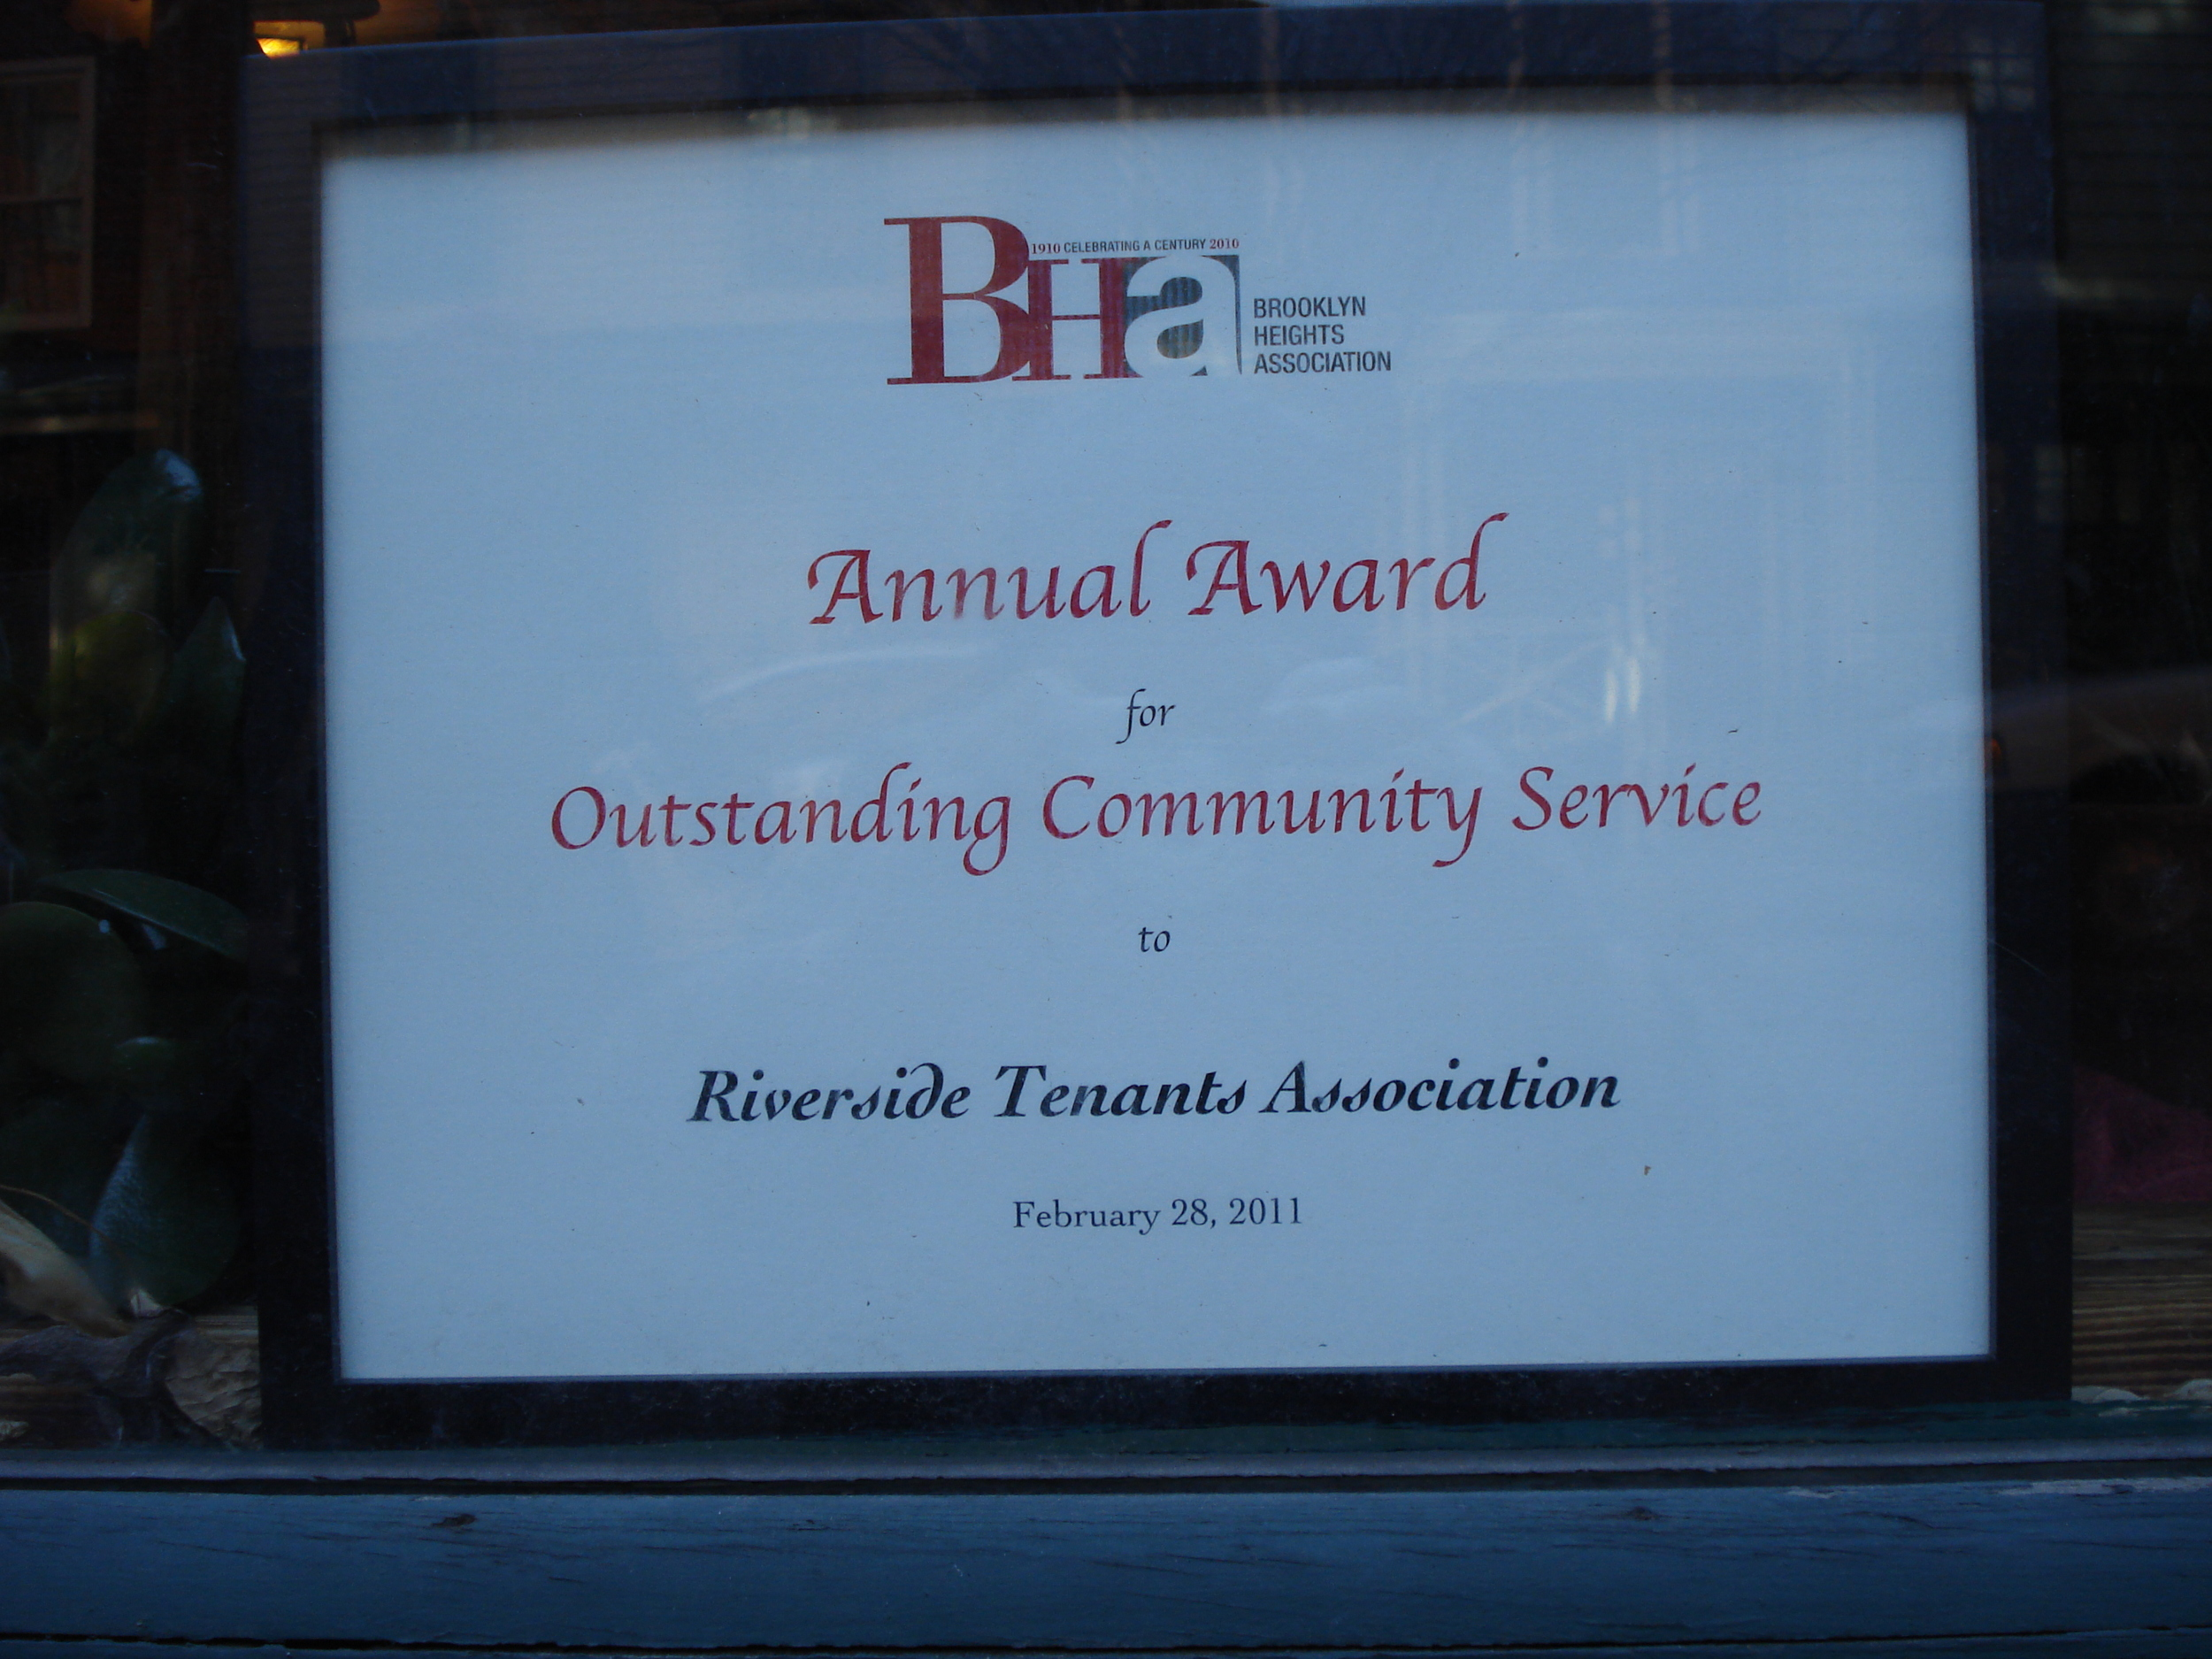 Brooklyn Heights Association Associate Award